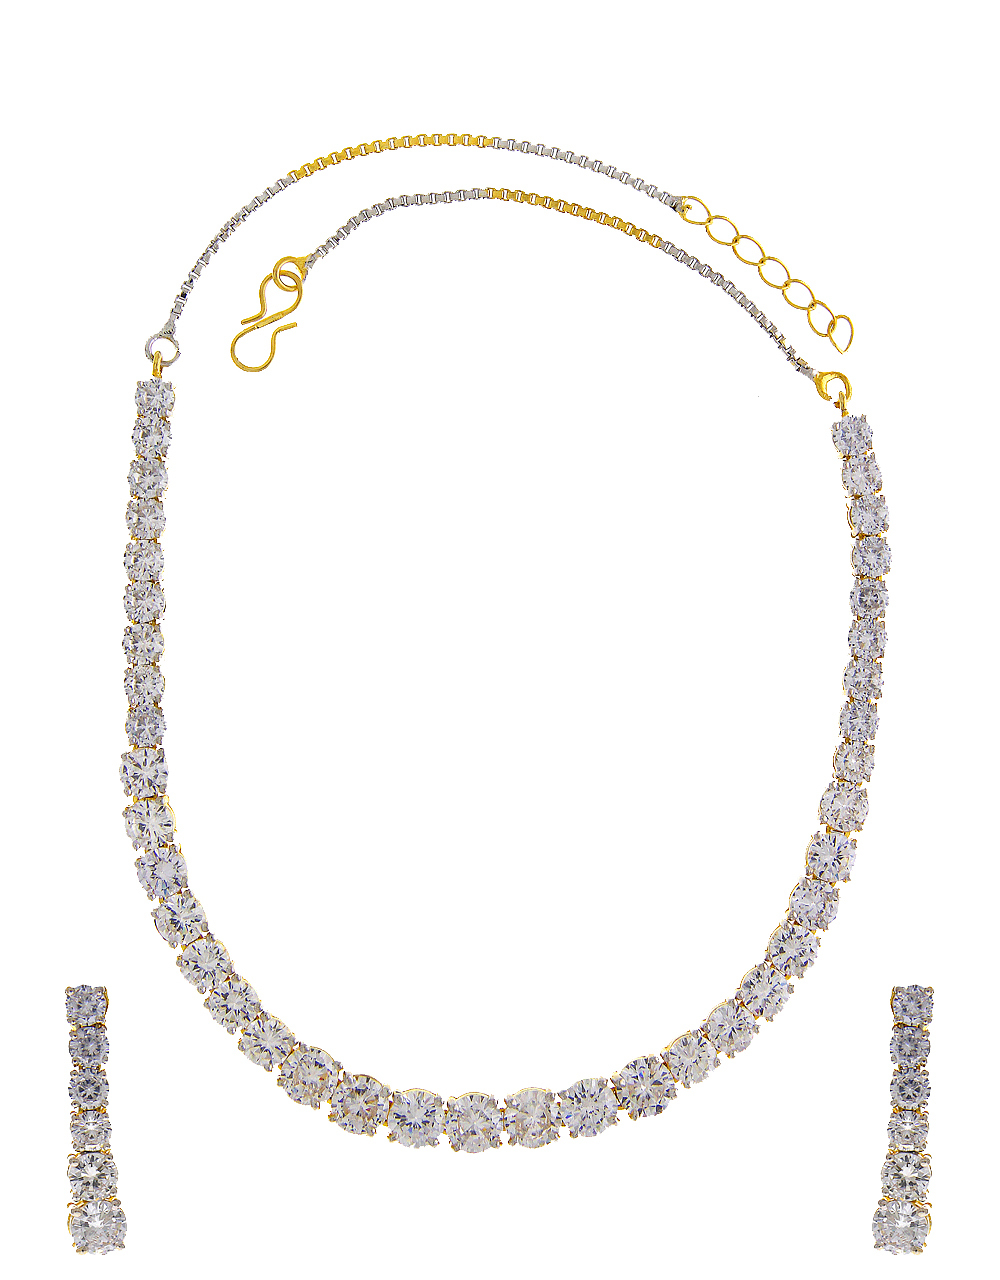 Gold Finish American Diamond Solitaire Necklace Set